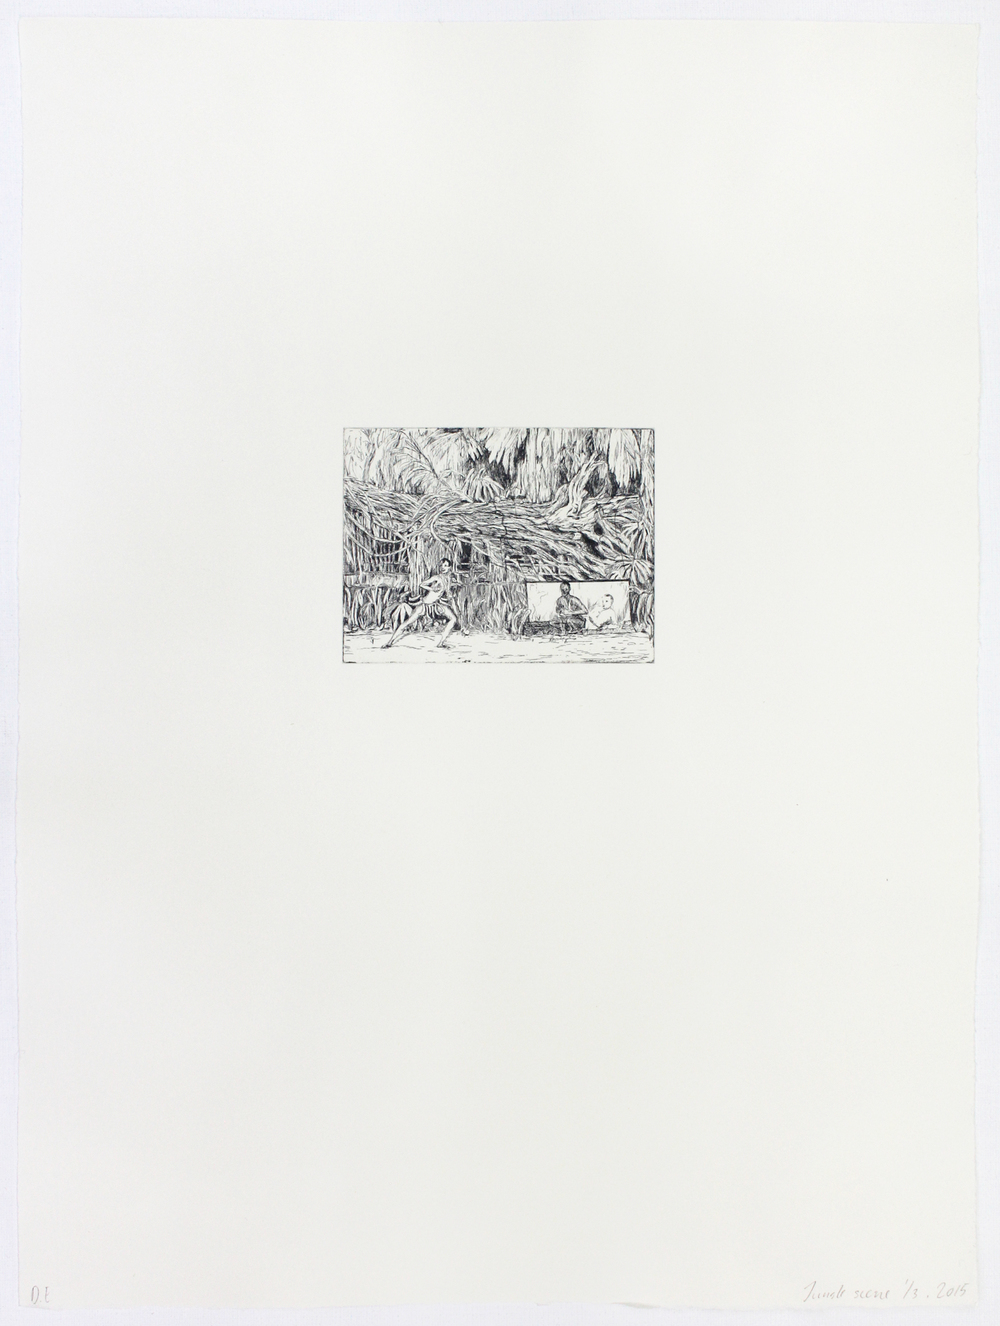 Jungle, 2013, Copper plate print (9,2 x 12,5 cm) on paper 53 x 39 cm, edition of 3, (paper view).jpg